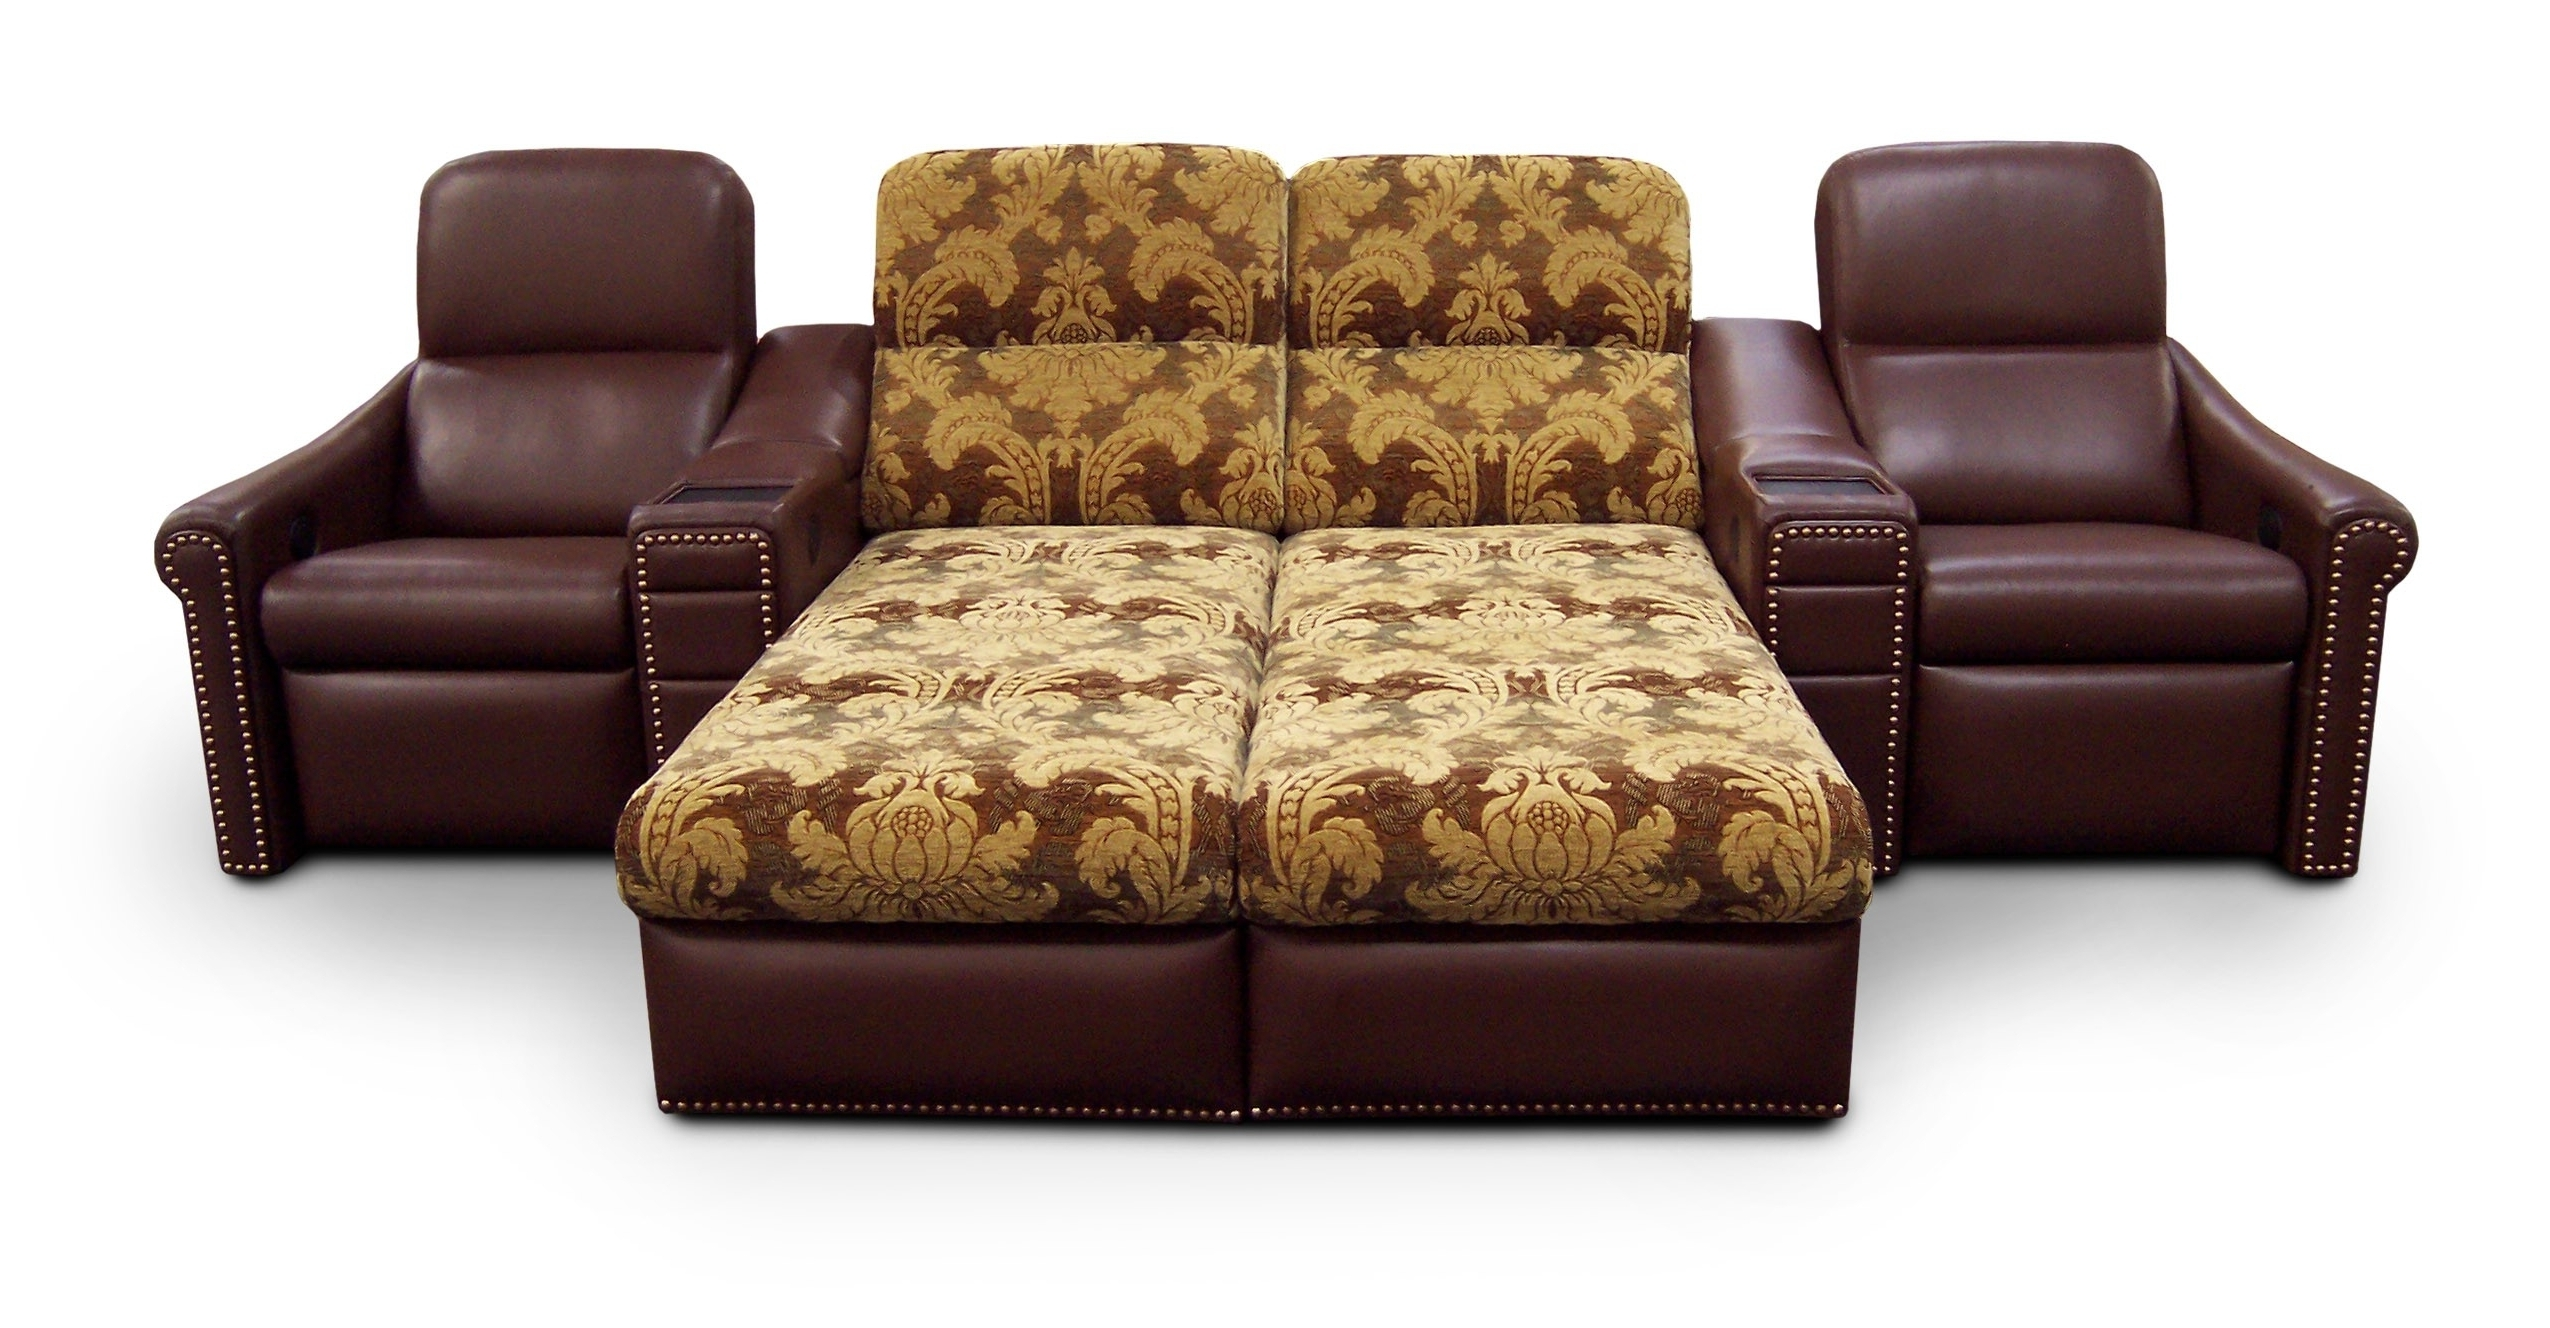 Popular Dual Chaise Lounge Chairs Regarding Double Chaise Lounge Sofa Decorators Systems – Surripui (View 10 of 15)